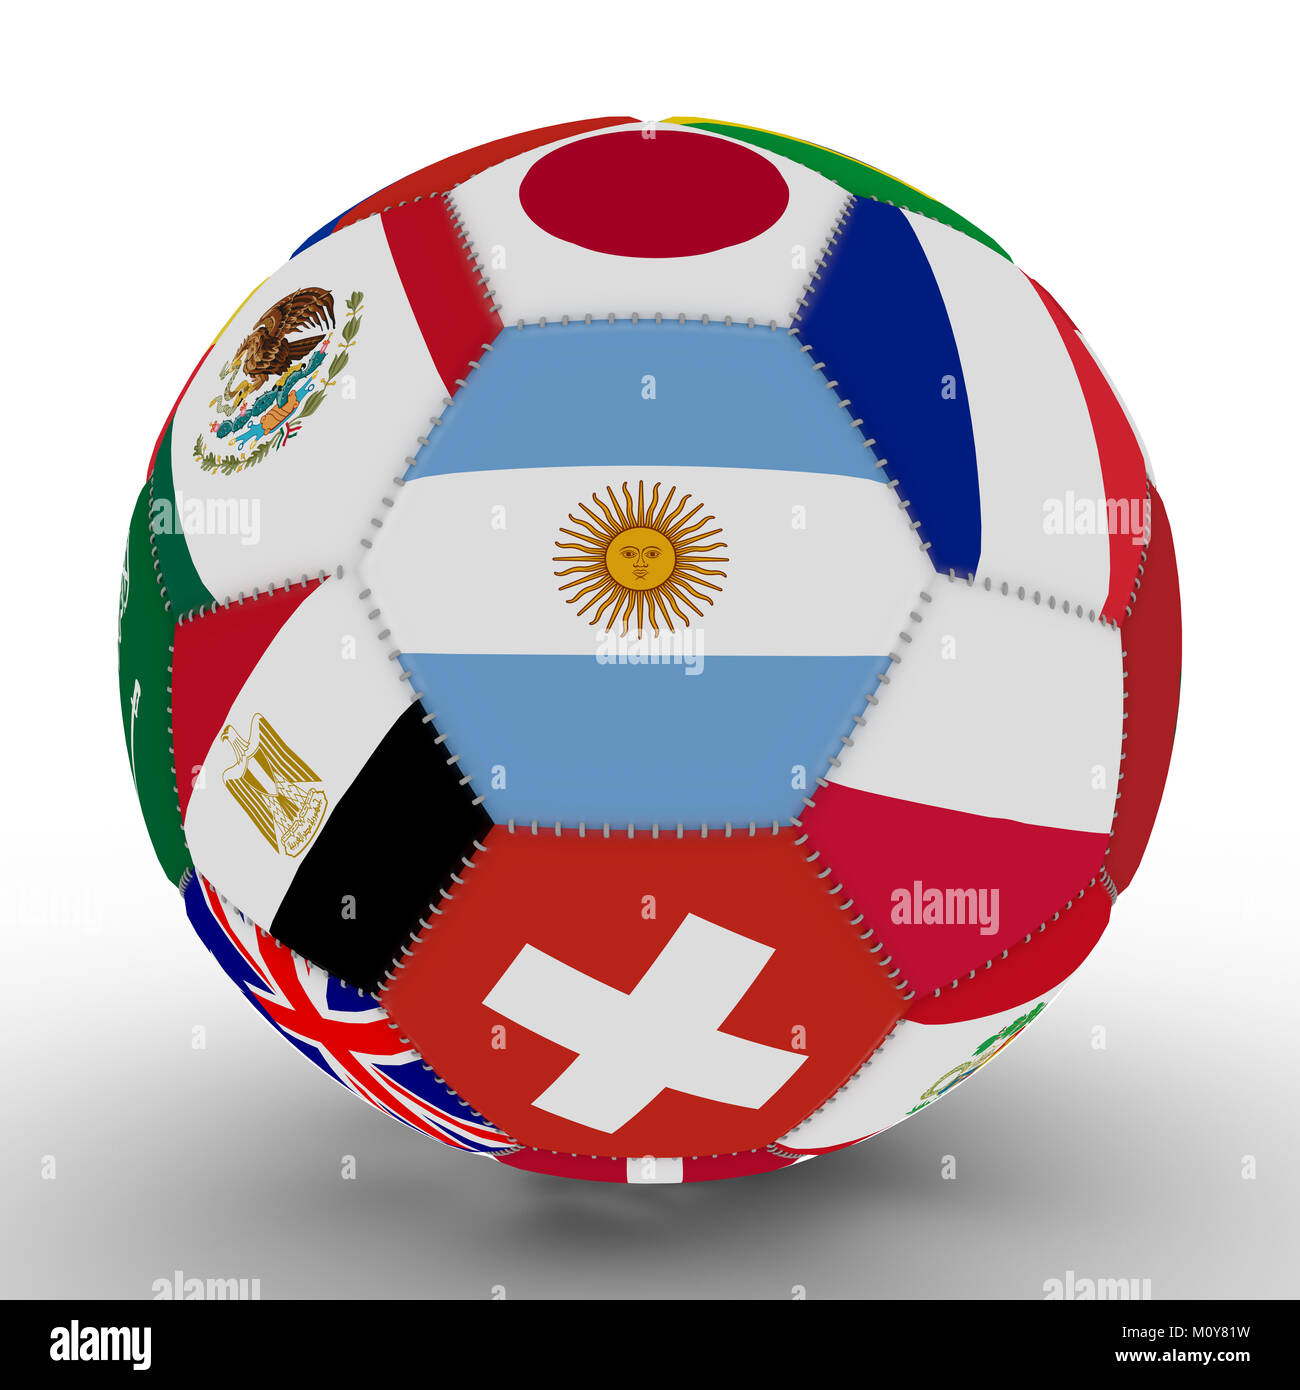 Soccer ball with the color flags of the countries participating in the Cup, in the middle of Argentina, 3d rendering Stock Photo